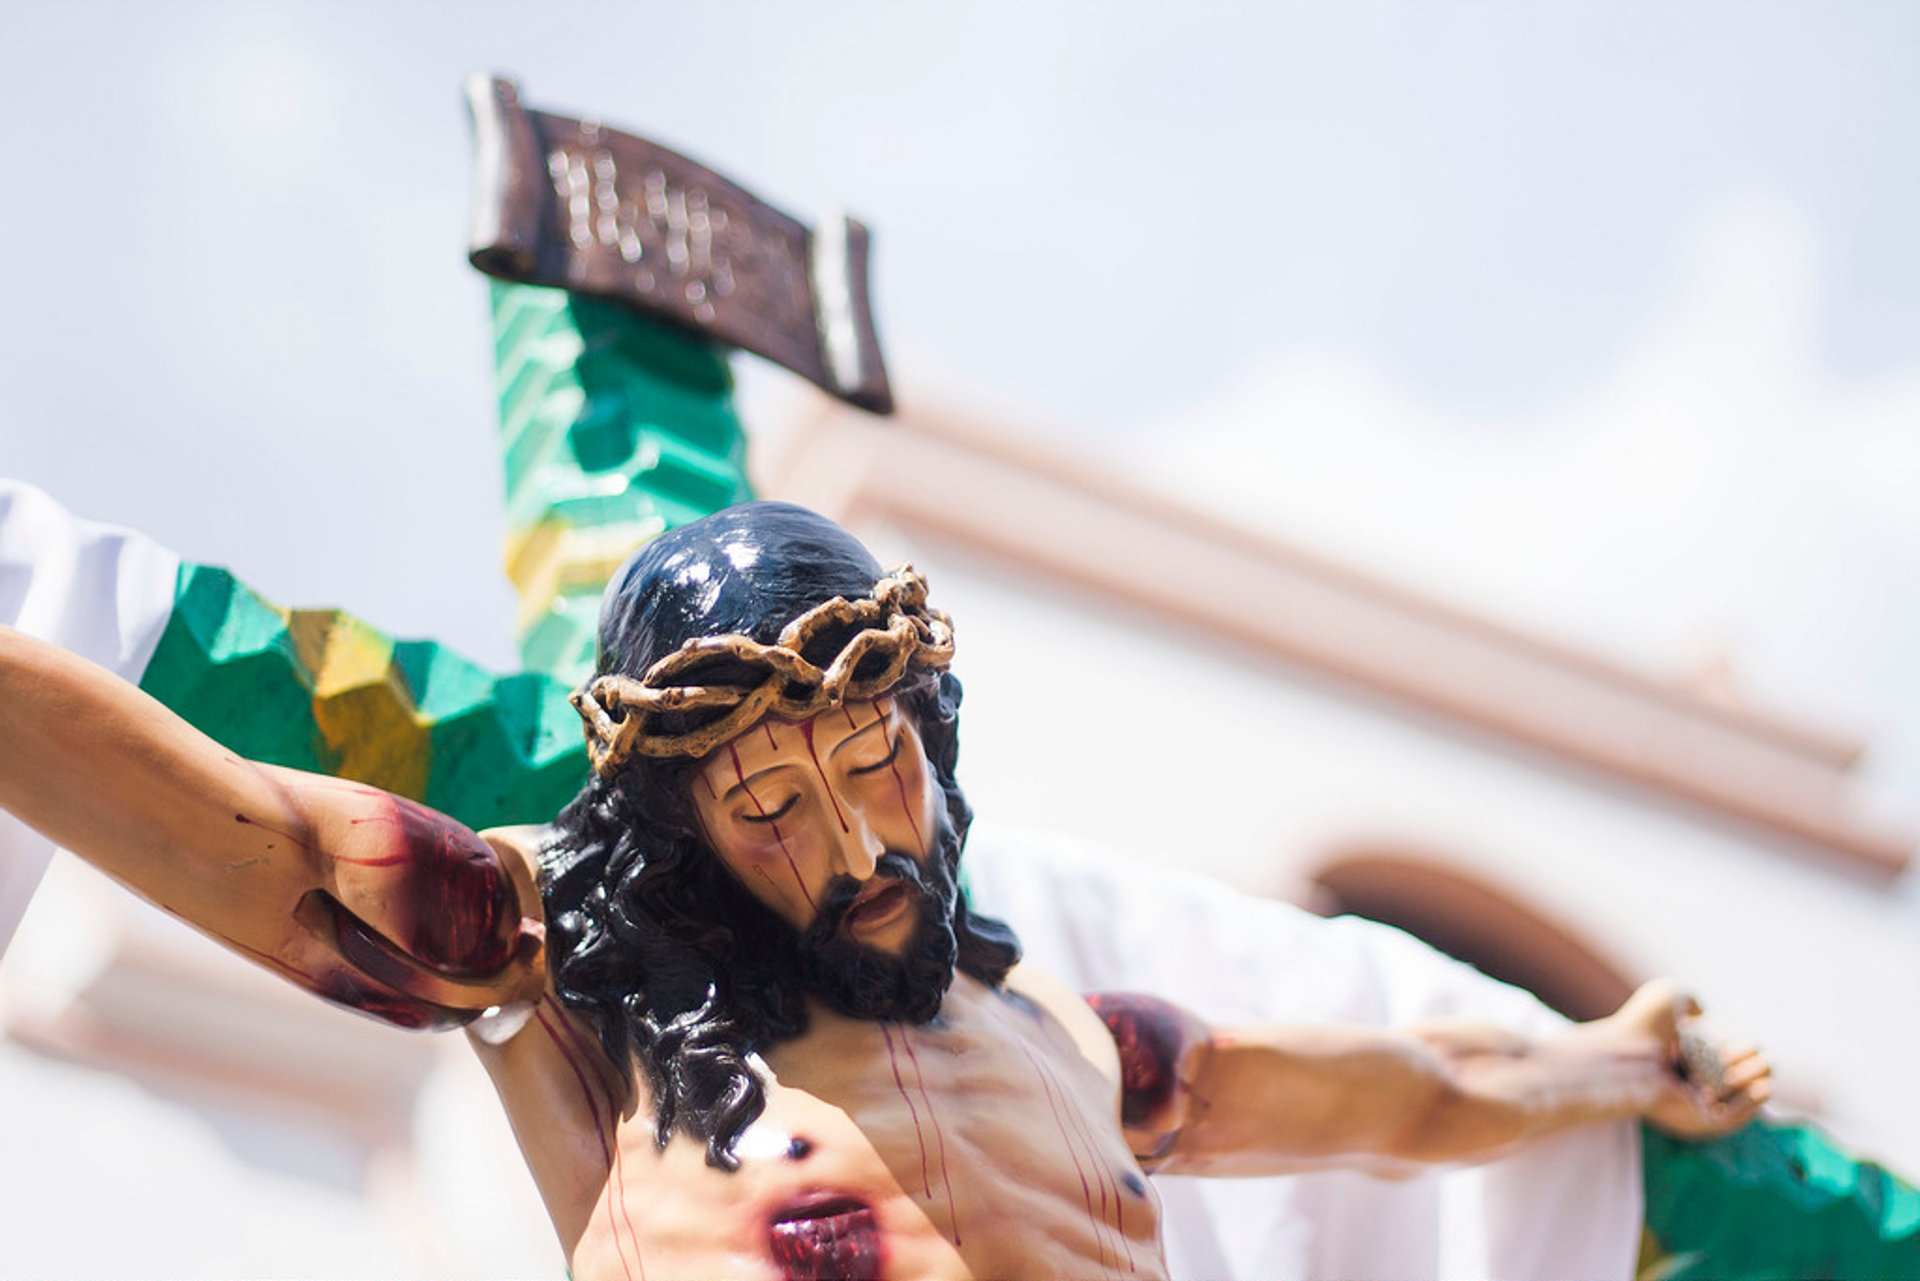 Crucified Jesus in Valle de Ángeles, Honduras 2020